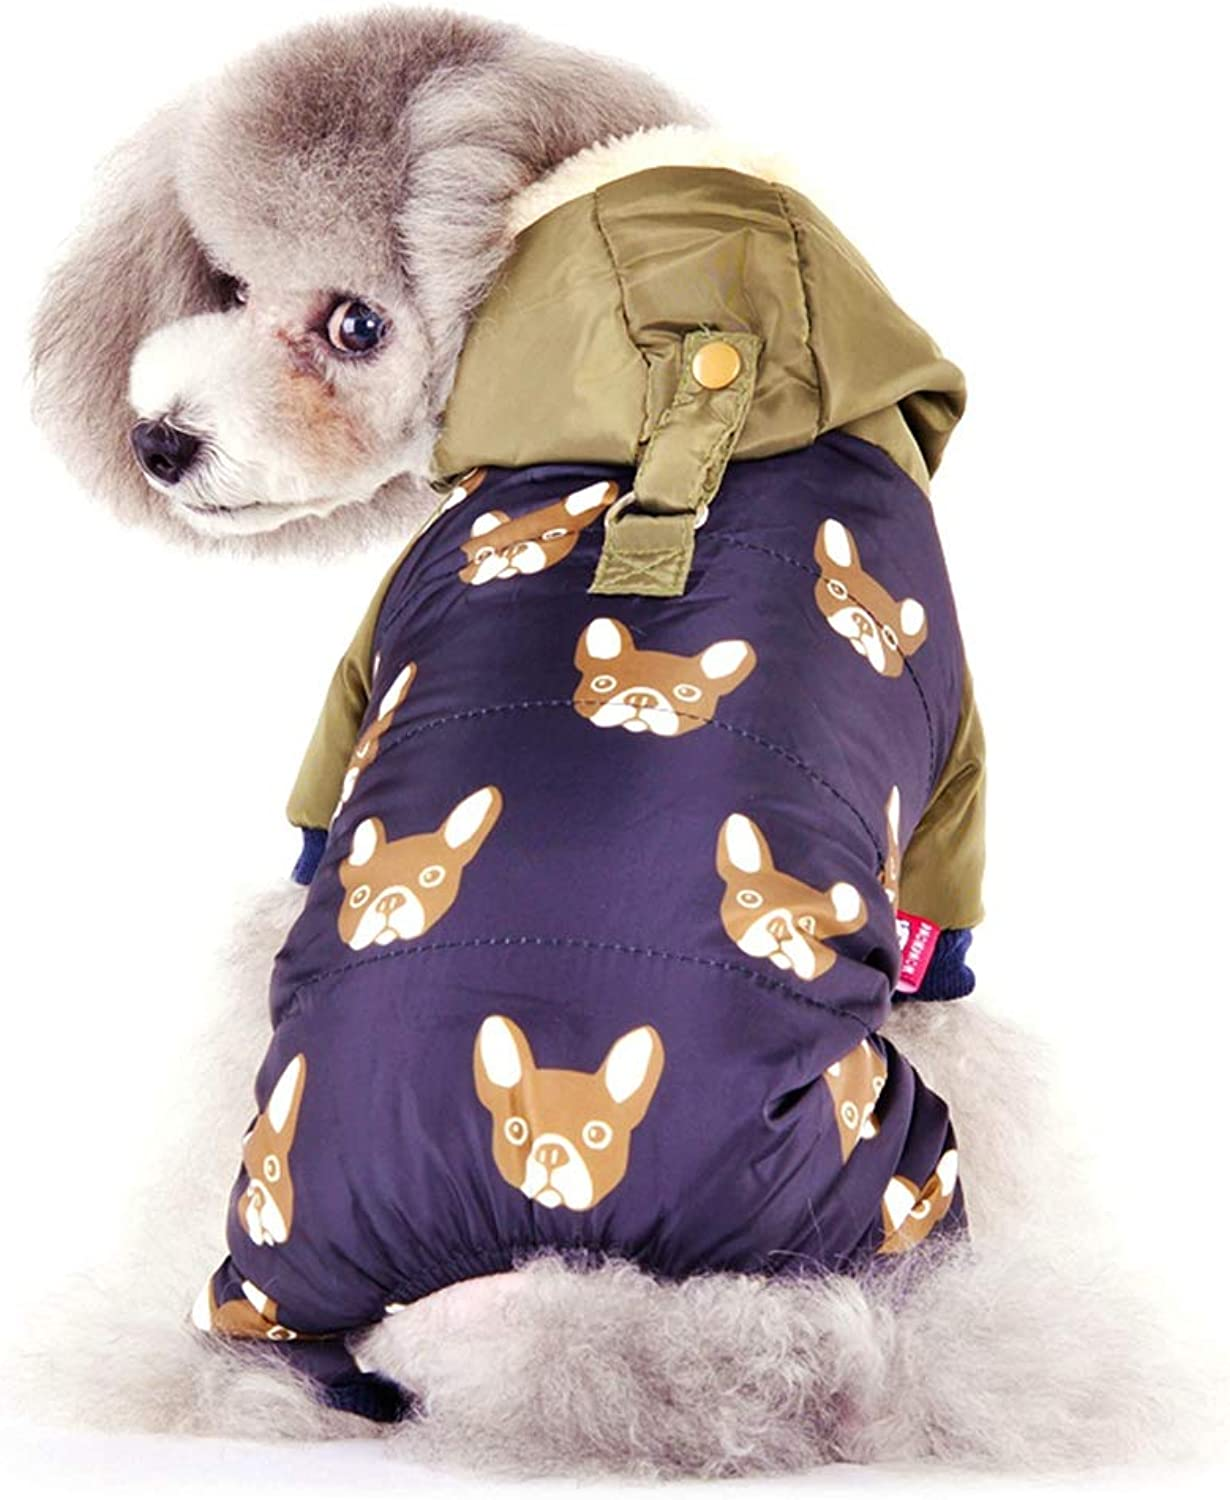 AOBRITON Bulldog Costumes for Dog Winter Warm Snow Down Jacket Coat for Puppies Small Medium Animal Pet Cat Clothes Goods